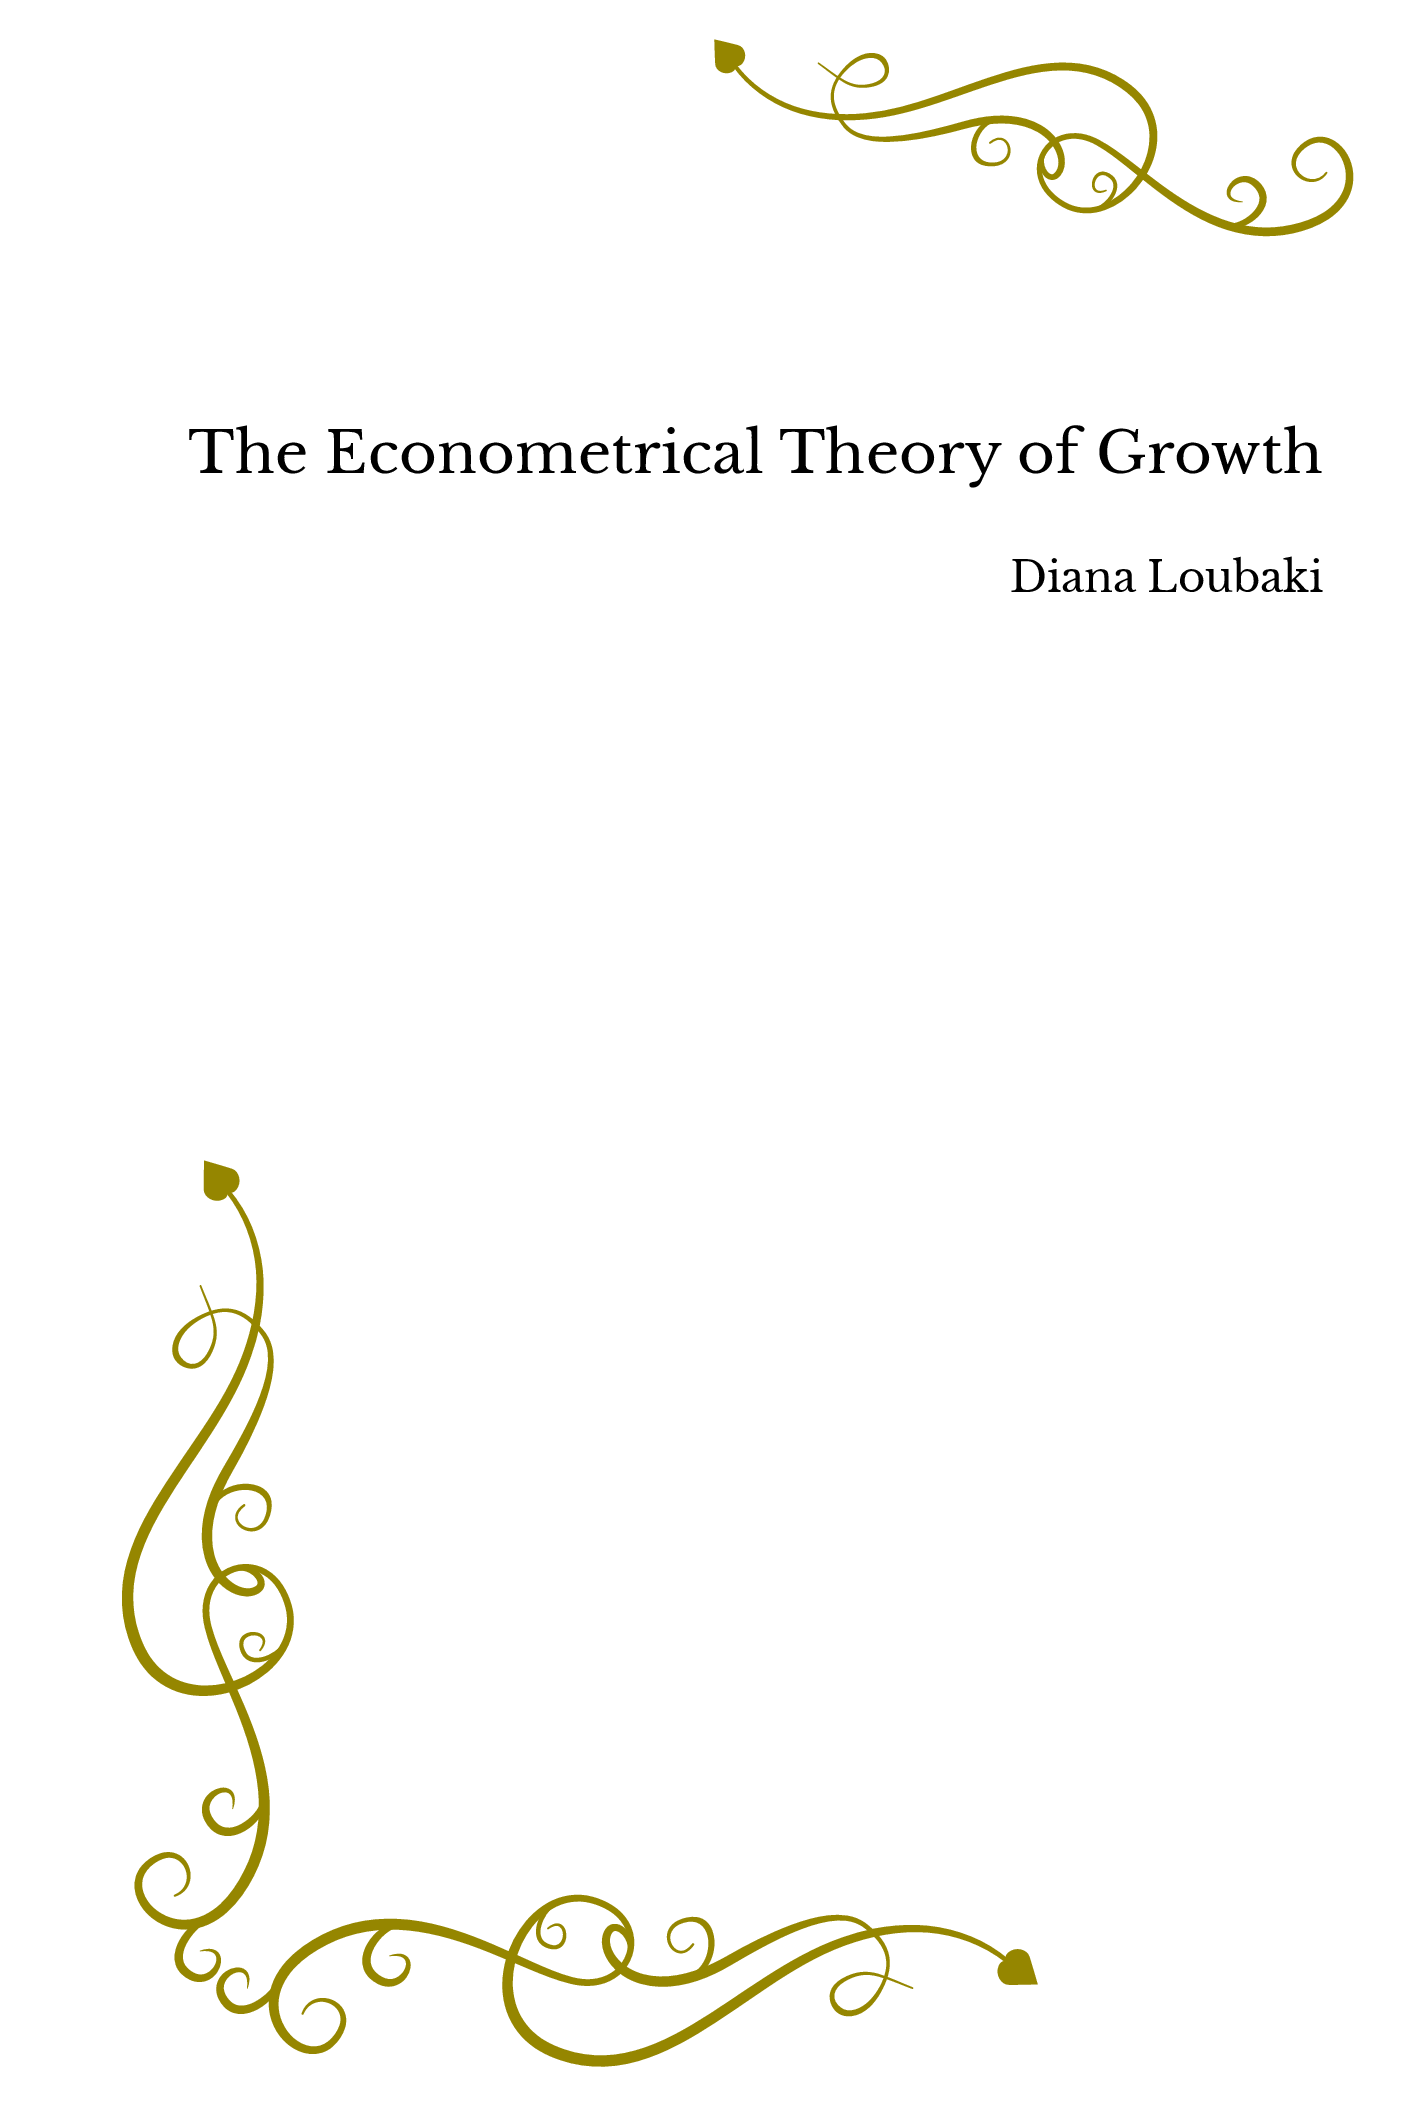 The Econometrical Theory of Growth